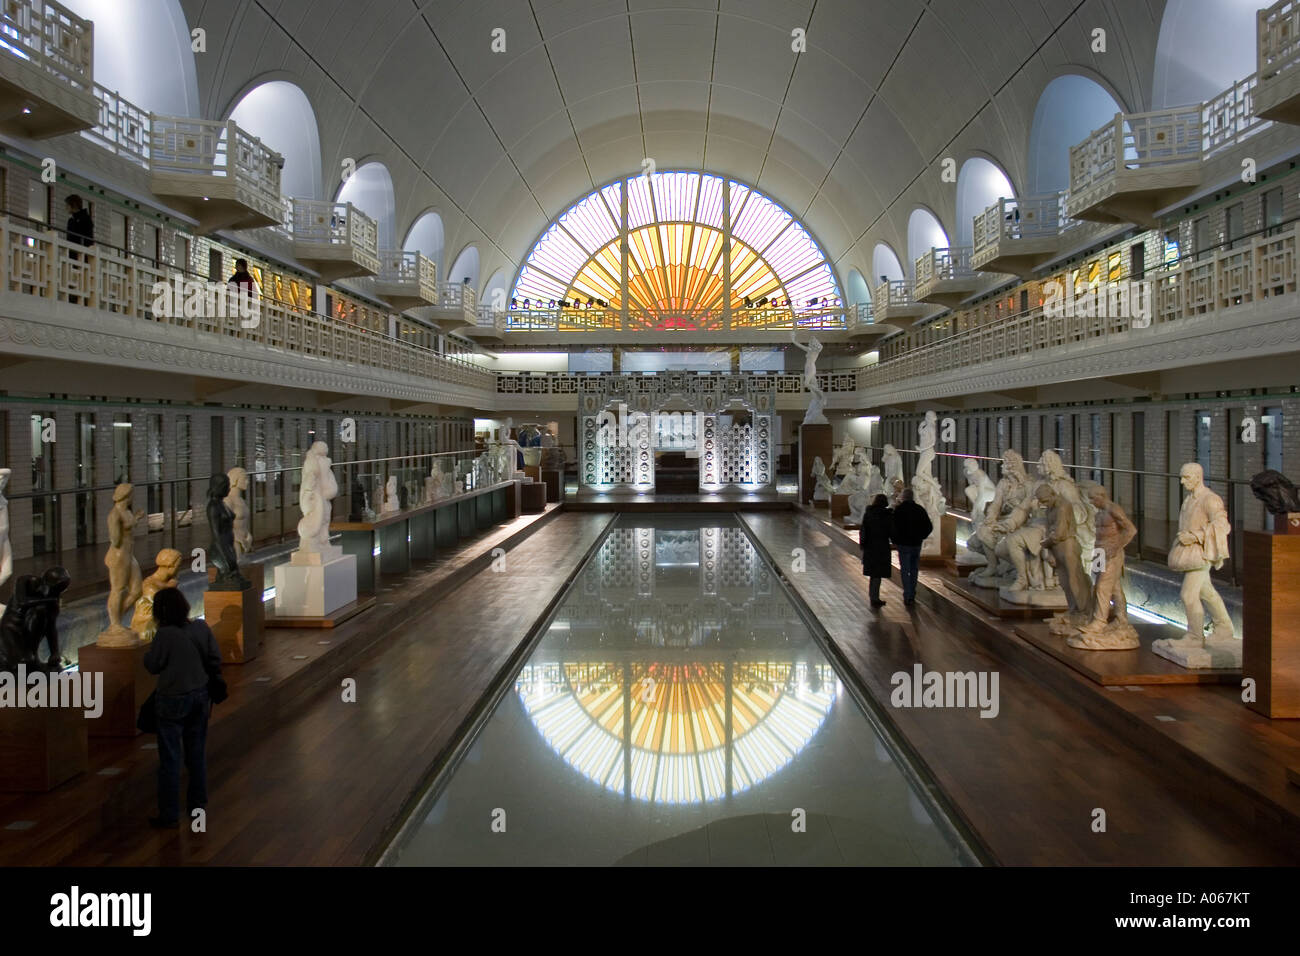 Art and industry museum la piscine lille france stock for Piscine a lille